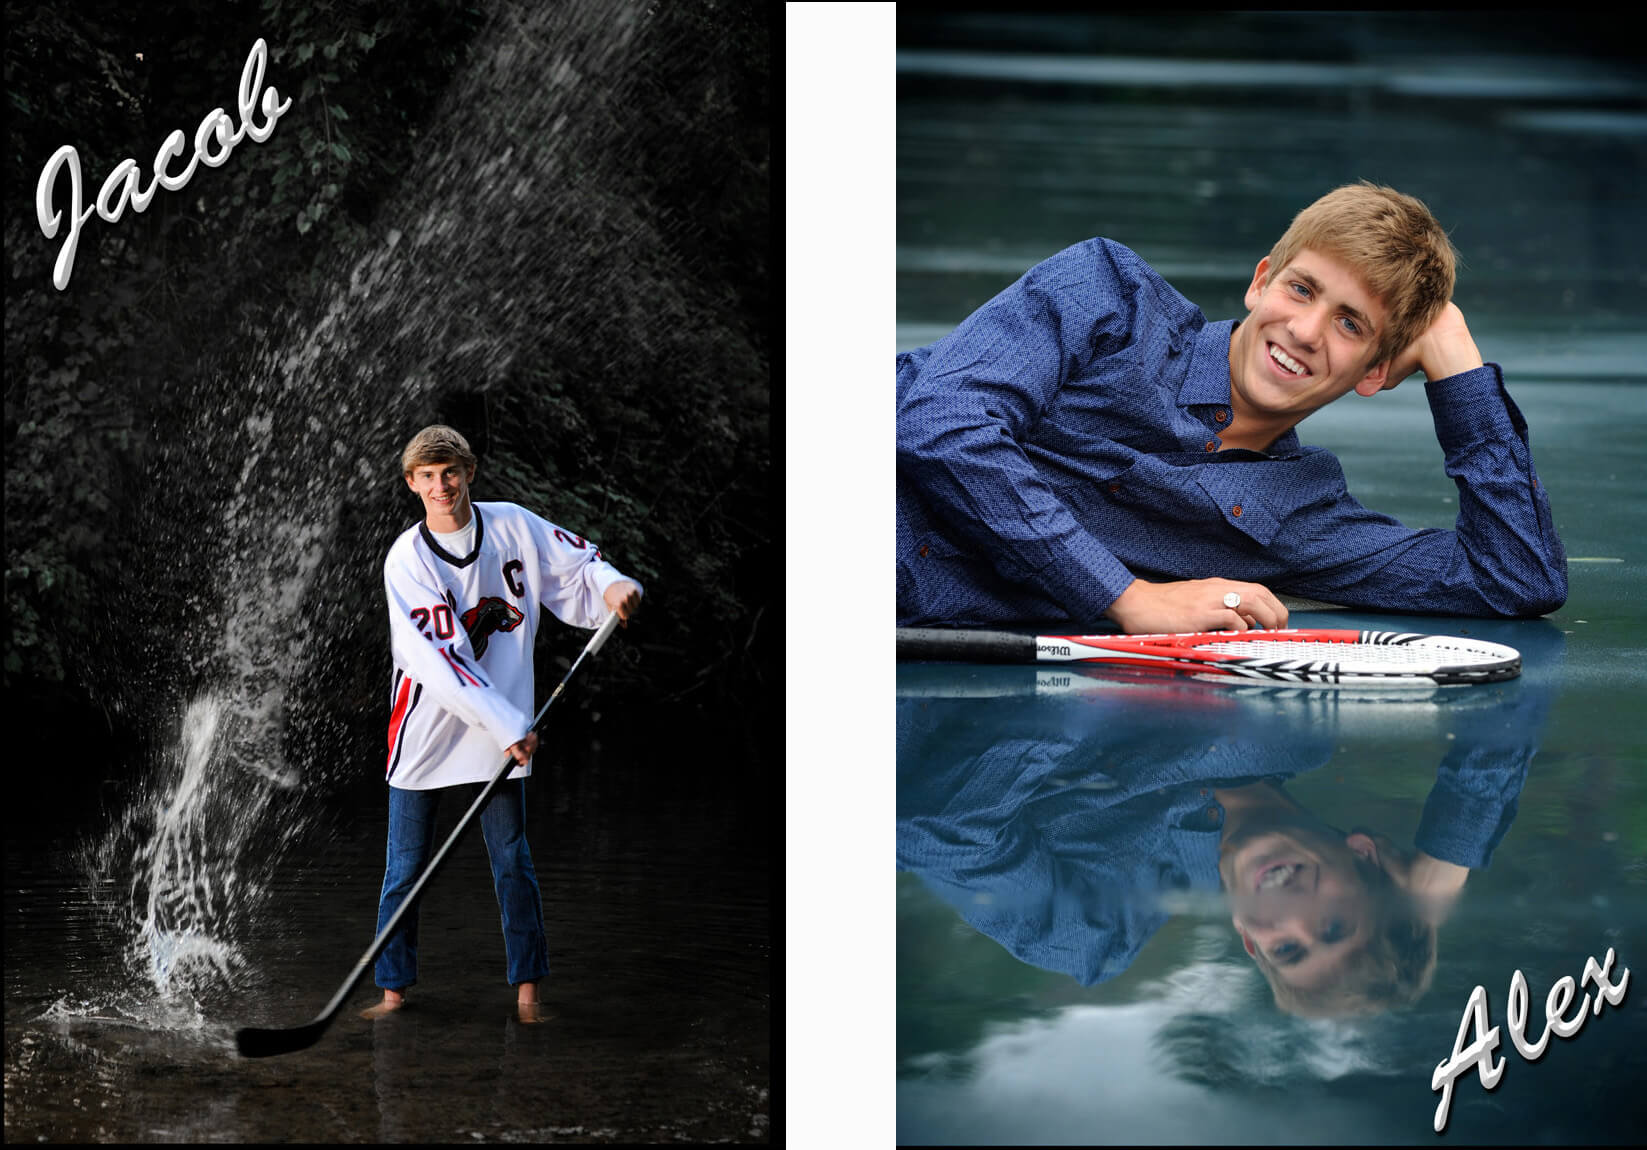 Many Michigan high school seniors want to showcase their favorite sports. I like to find new ways to shoot them that haven't been done before like playing hockey in a river or shooting tennis in the rain at Cranbrook.